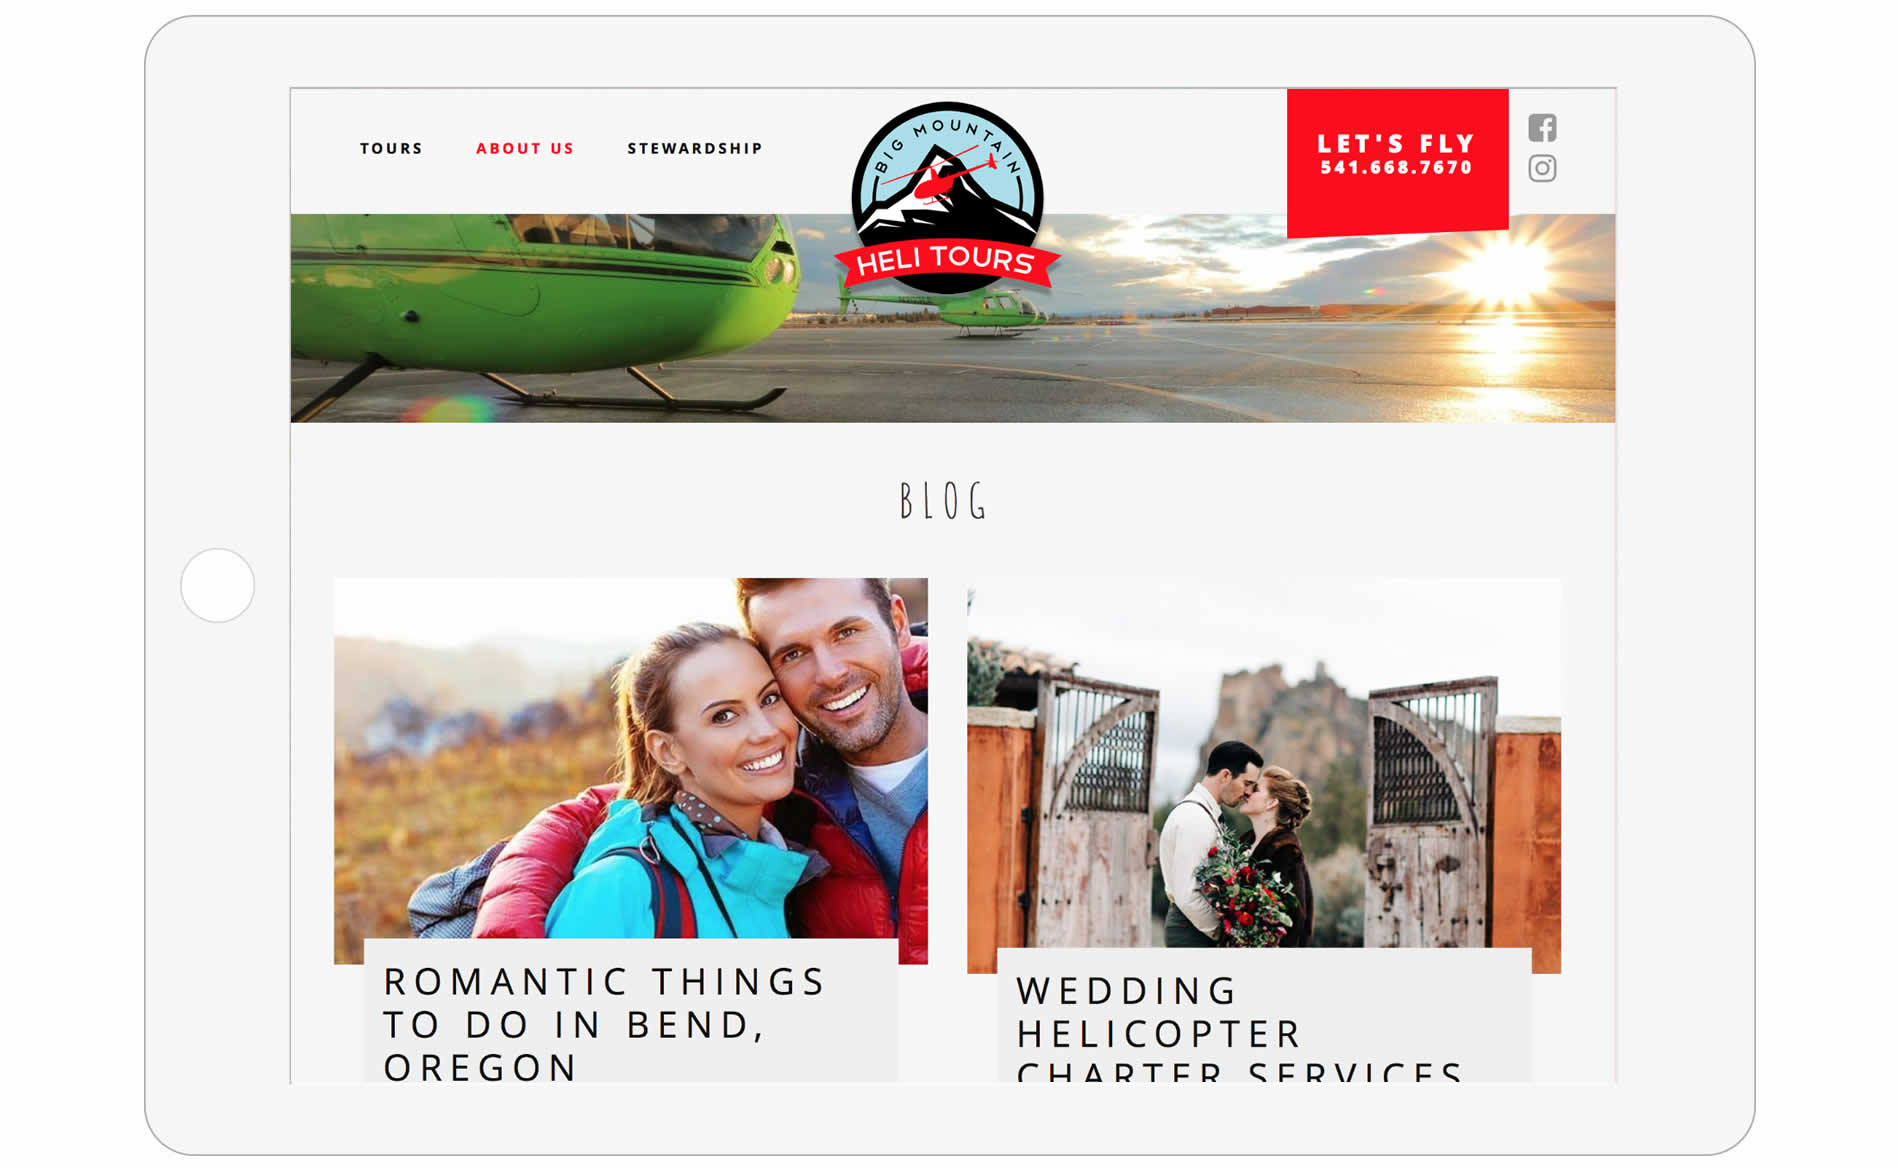 Big Mountain Heli Tours Website Design - Blog